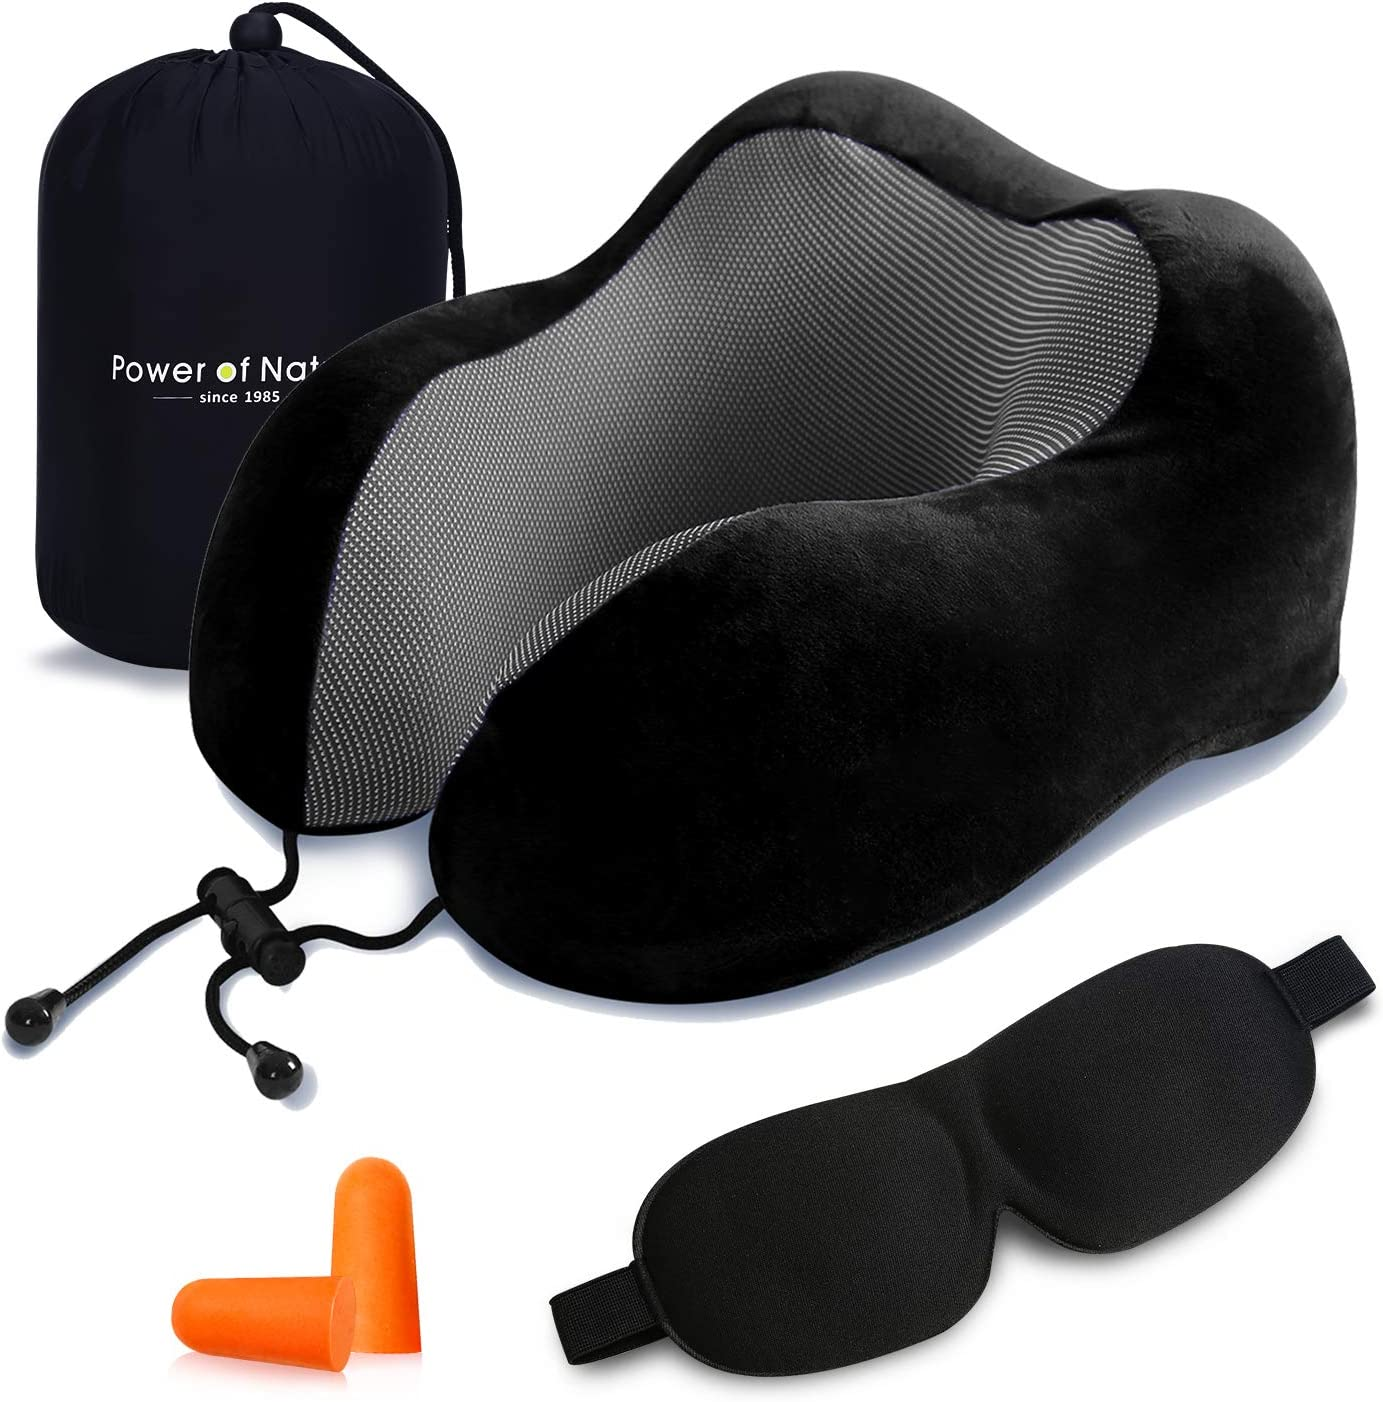 Power of Nature Travel Pillow Luxury Memory Foam Neck & Head Support Pillow Soft Sleeping Rest Cushion for Airplane Car & Home Best Gift(Black)